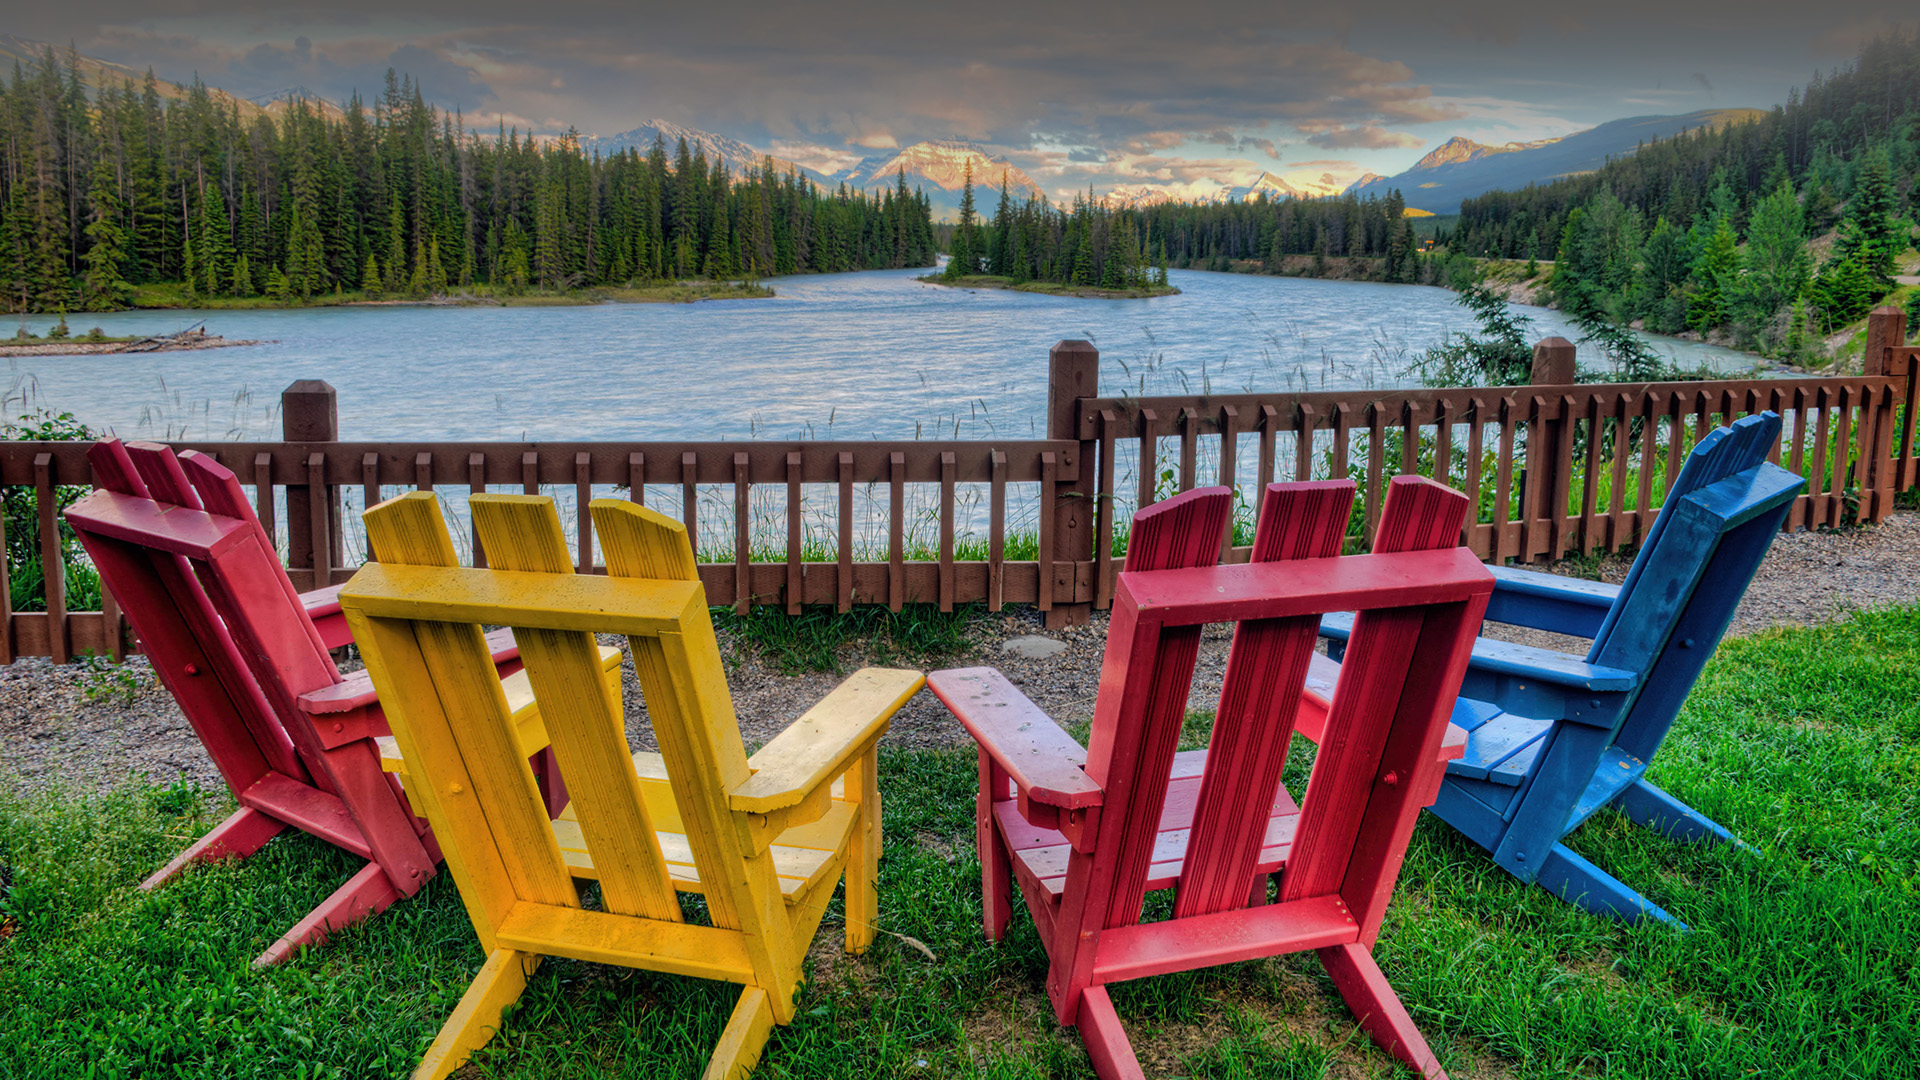 new river adirondack chairs stool chair amazon and the athabasca jasper national